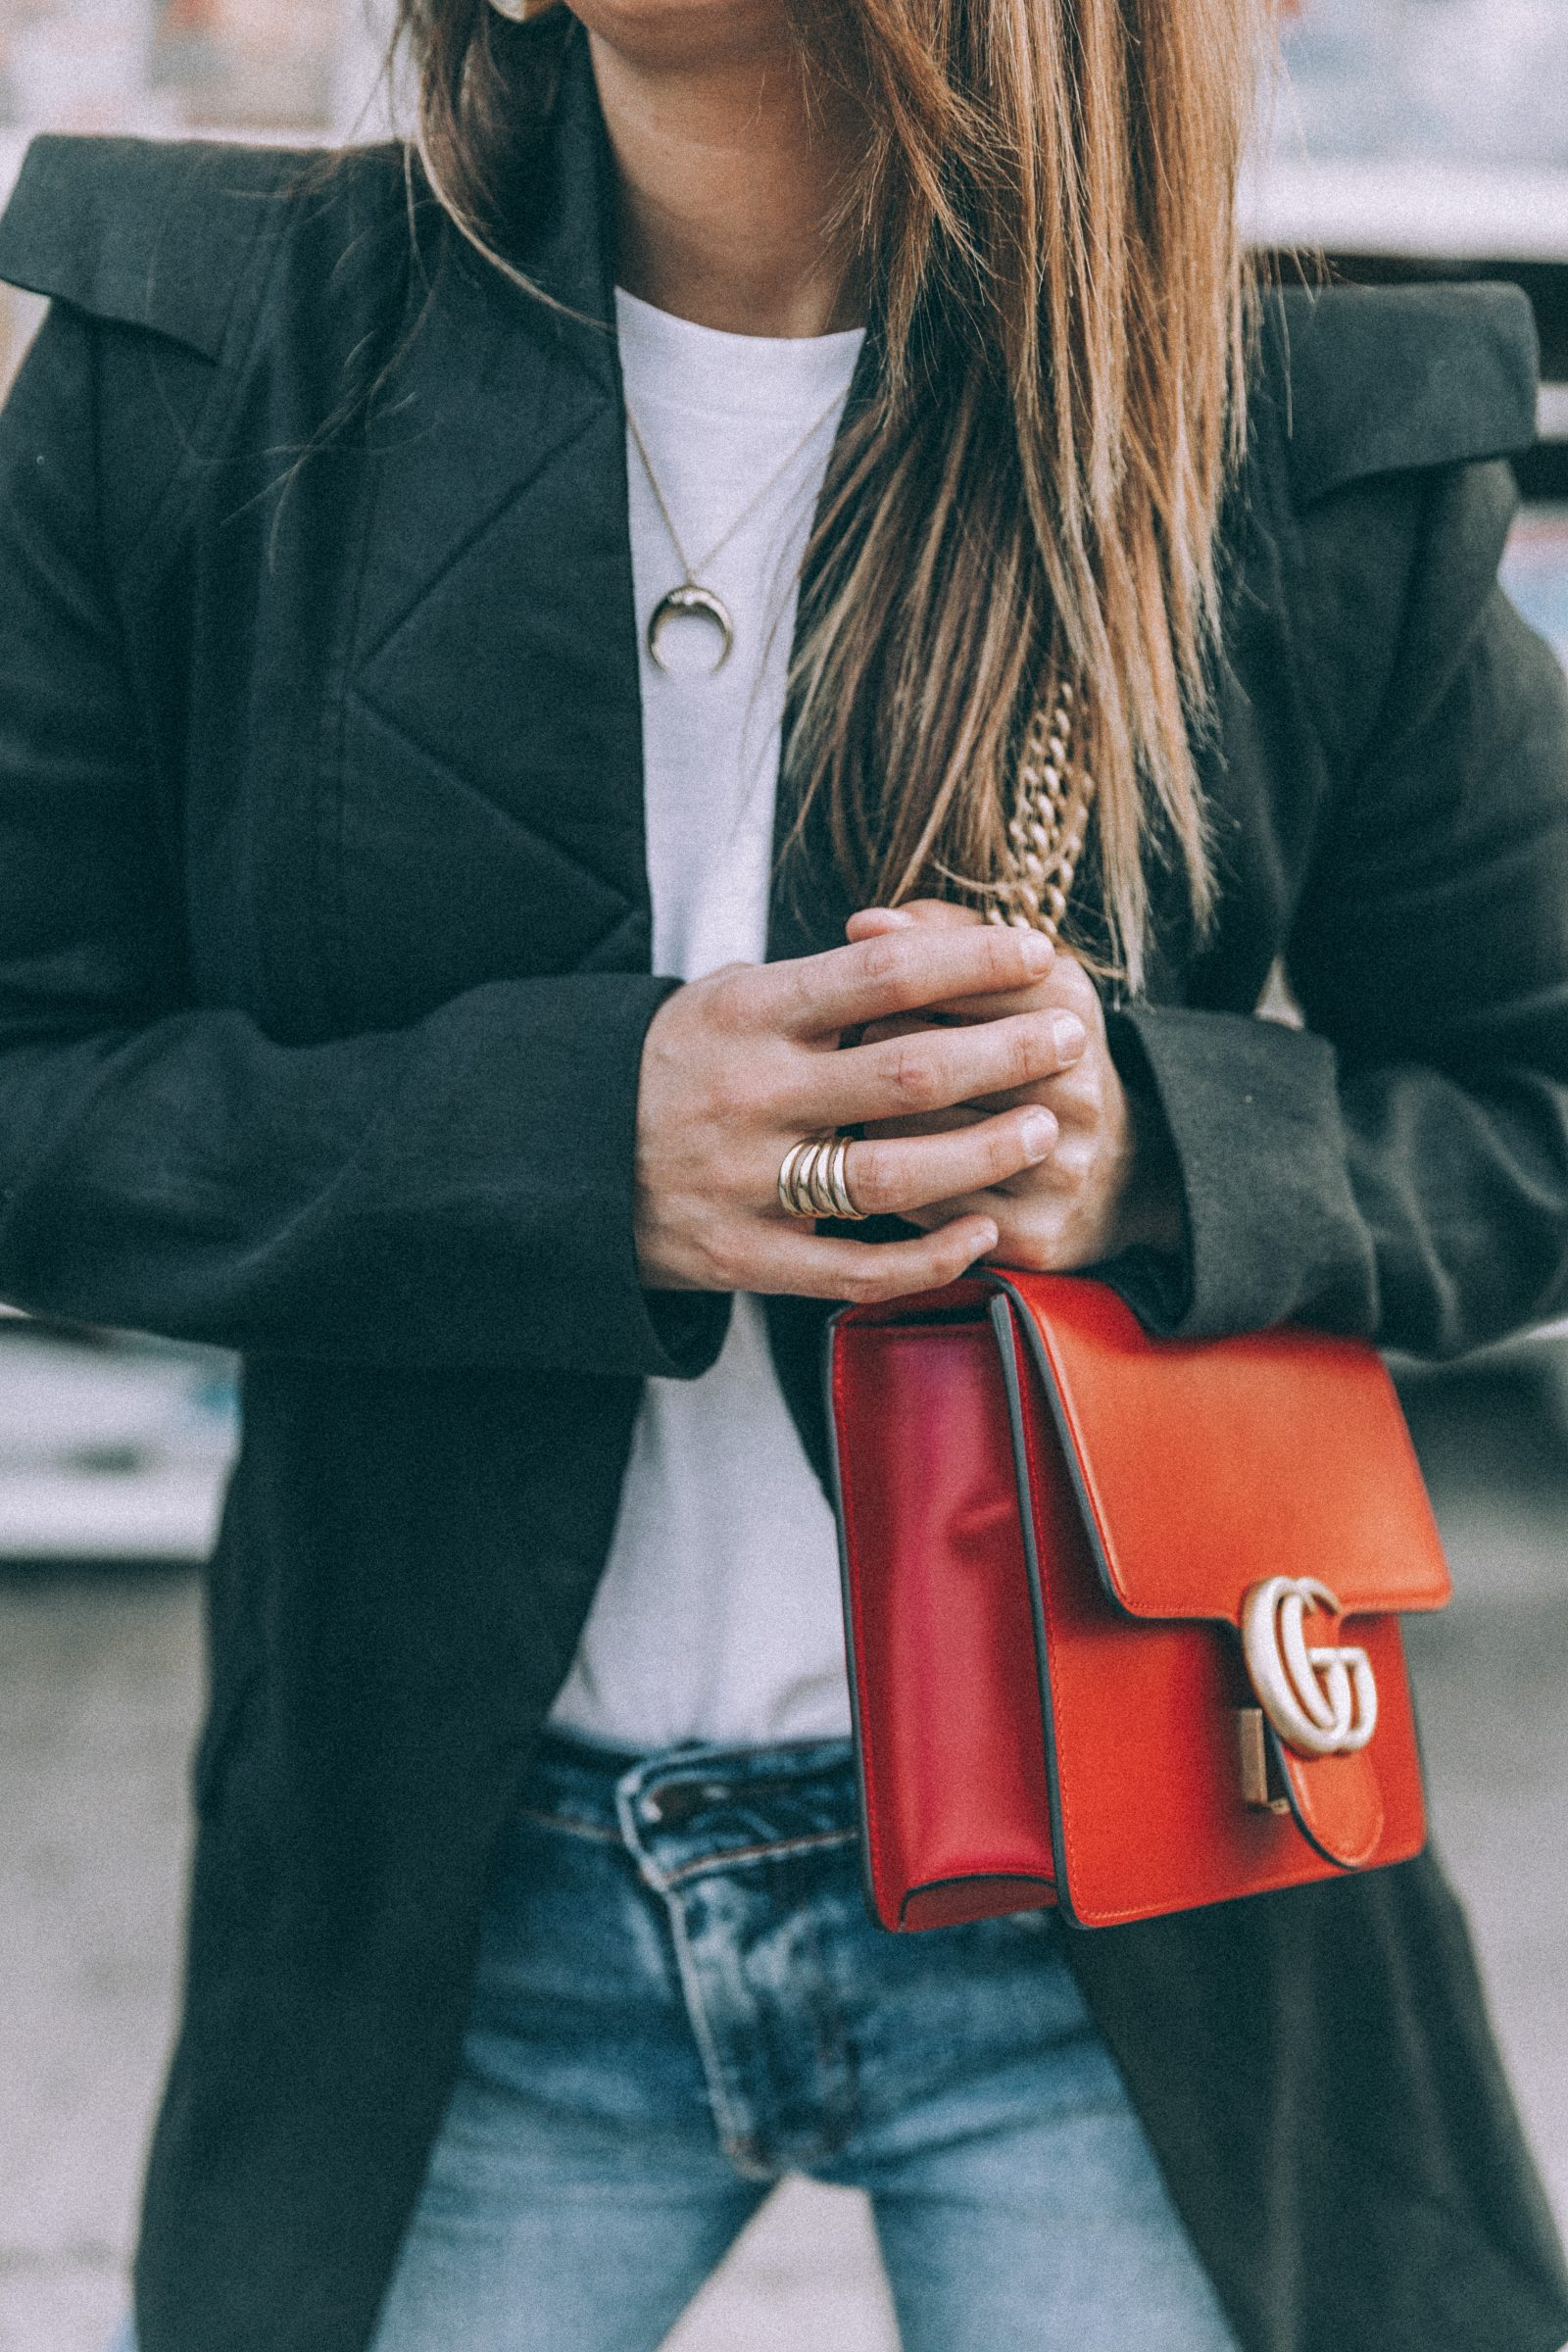 red_bag-snake_boots-gucci-levis-jeans-denim-iro_paris-black_blazer-los_angeles-la-fairfax-outfit-street_style-collage_vintage-31